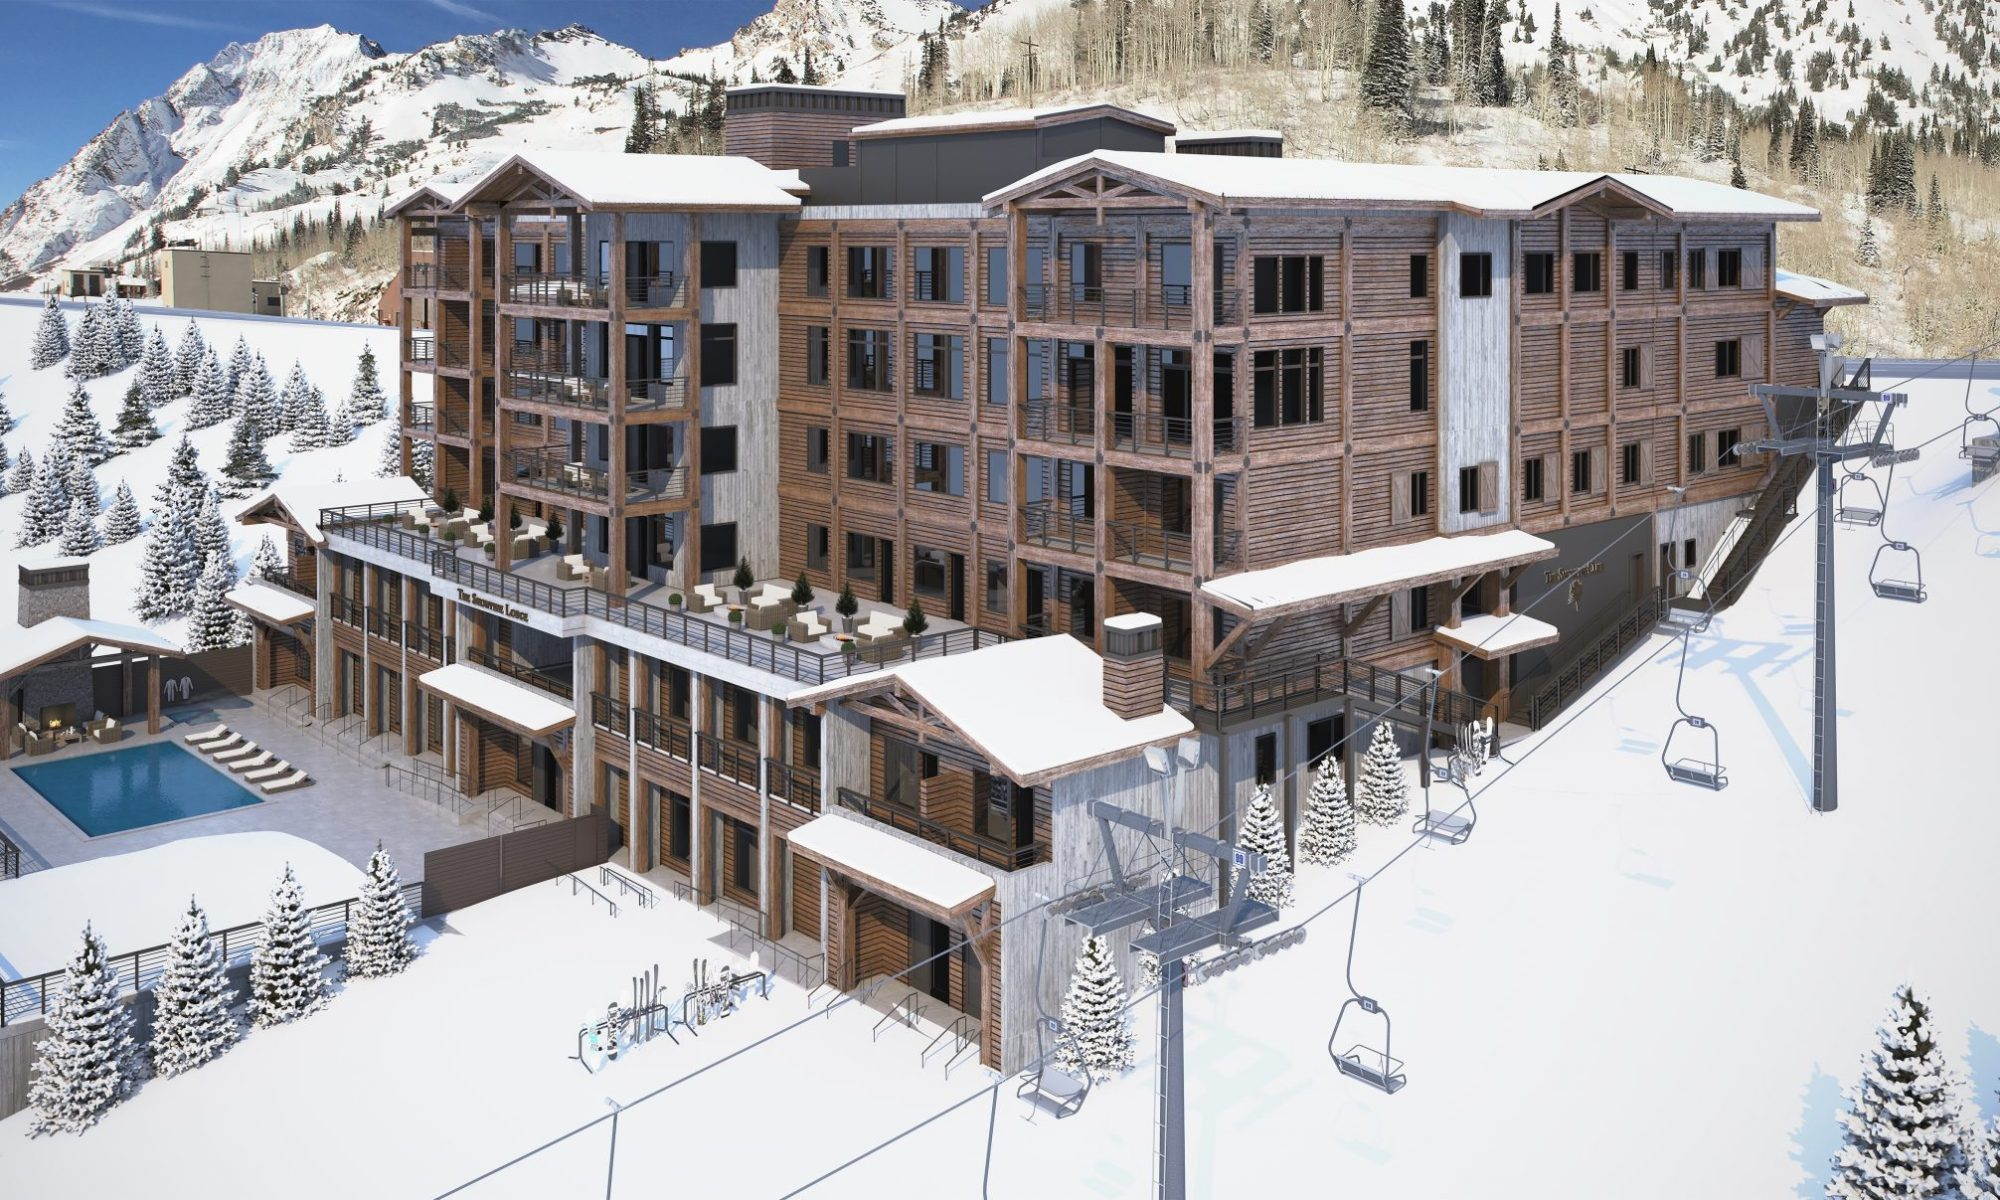 Snowpine Lodge Final Render. Credit: Snowpine Lodge. Snowpine Lodge Set to Open January 30, 2019.